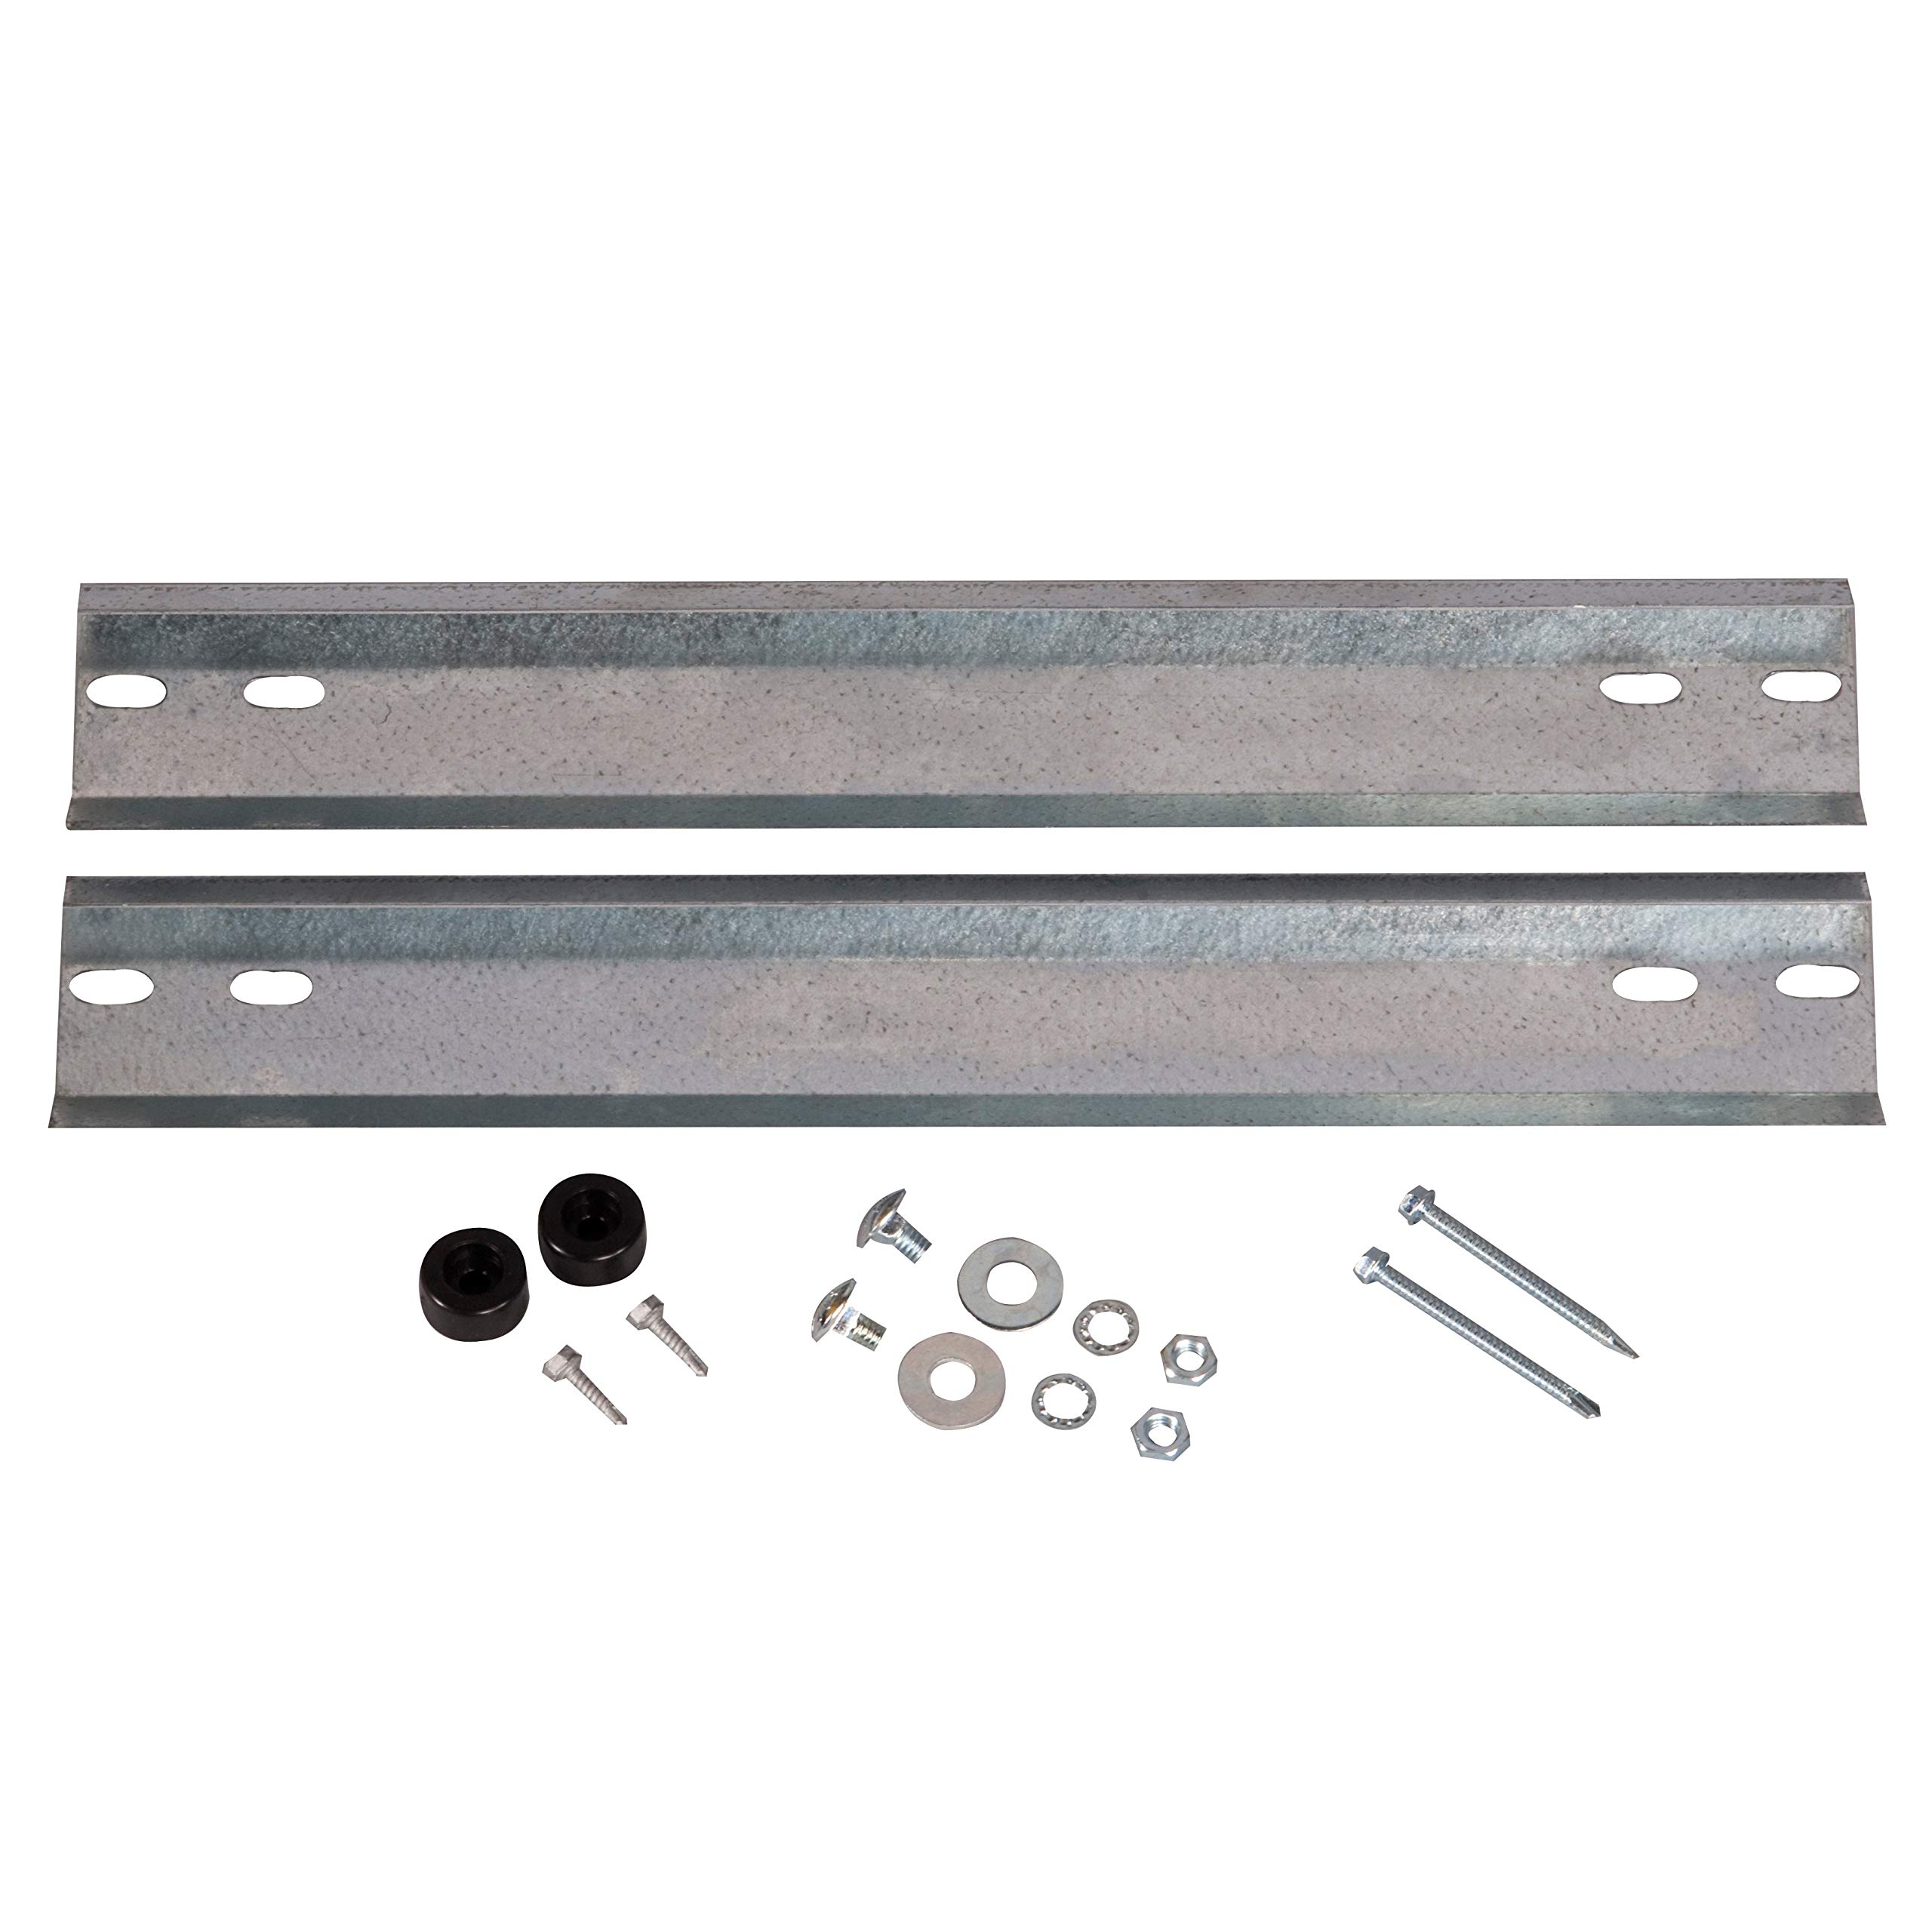 Justrite 25951-MOQ2 Wall Mount Kit for 4 Gal Cabinet